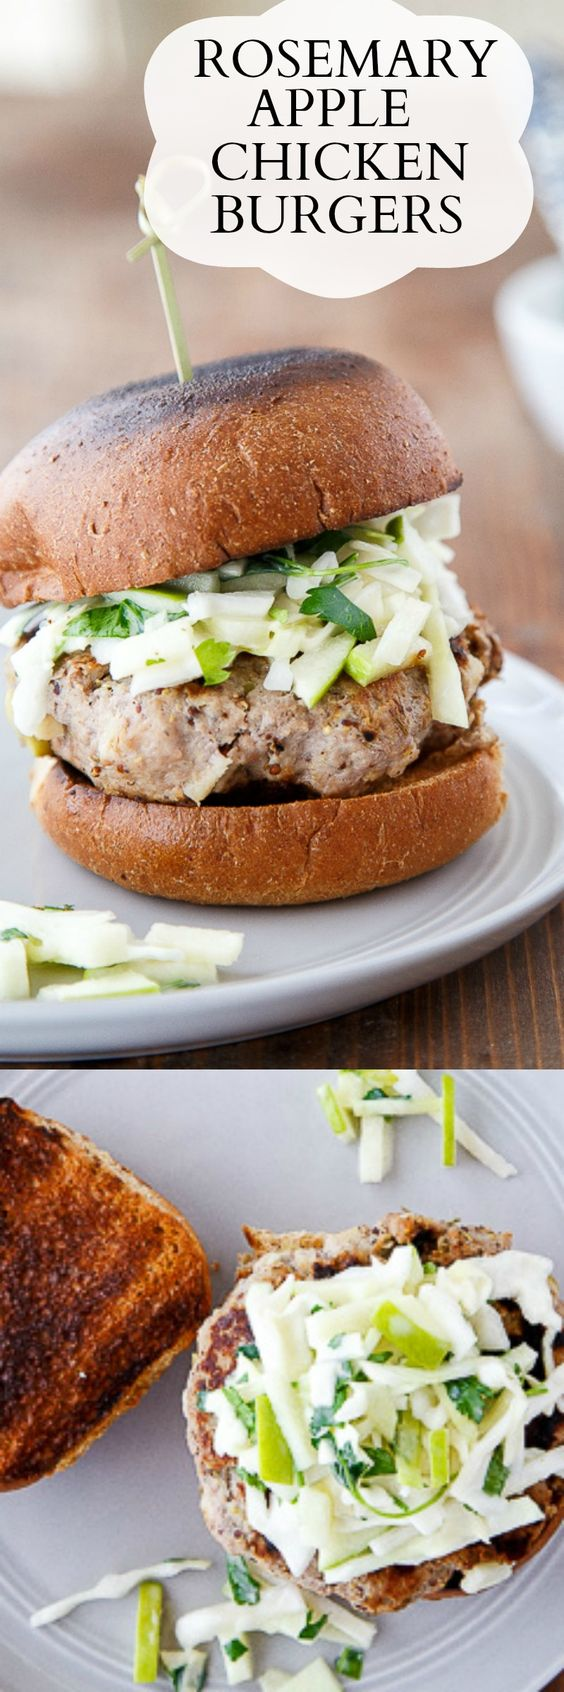 Ground chicken burgers with apple and rosemary, plus an apple slaw on top! #chicken #groundchicken #chickenburger #applechicken #rosemarychicken #greenappleslaw #appleslaw